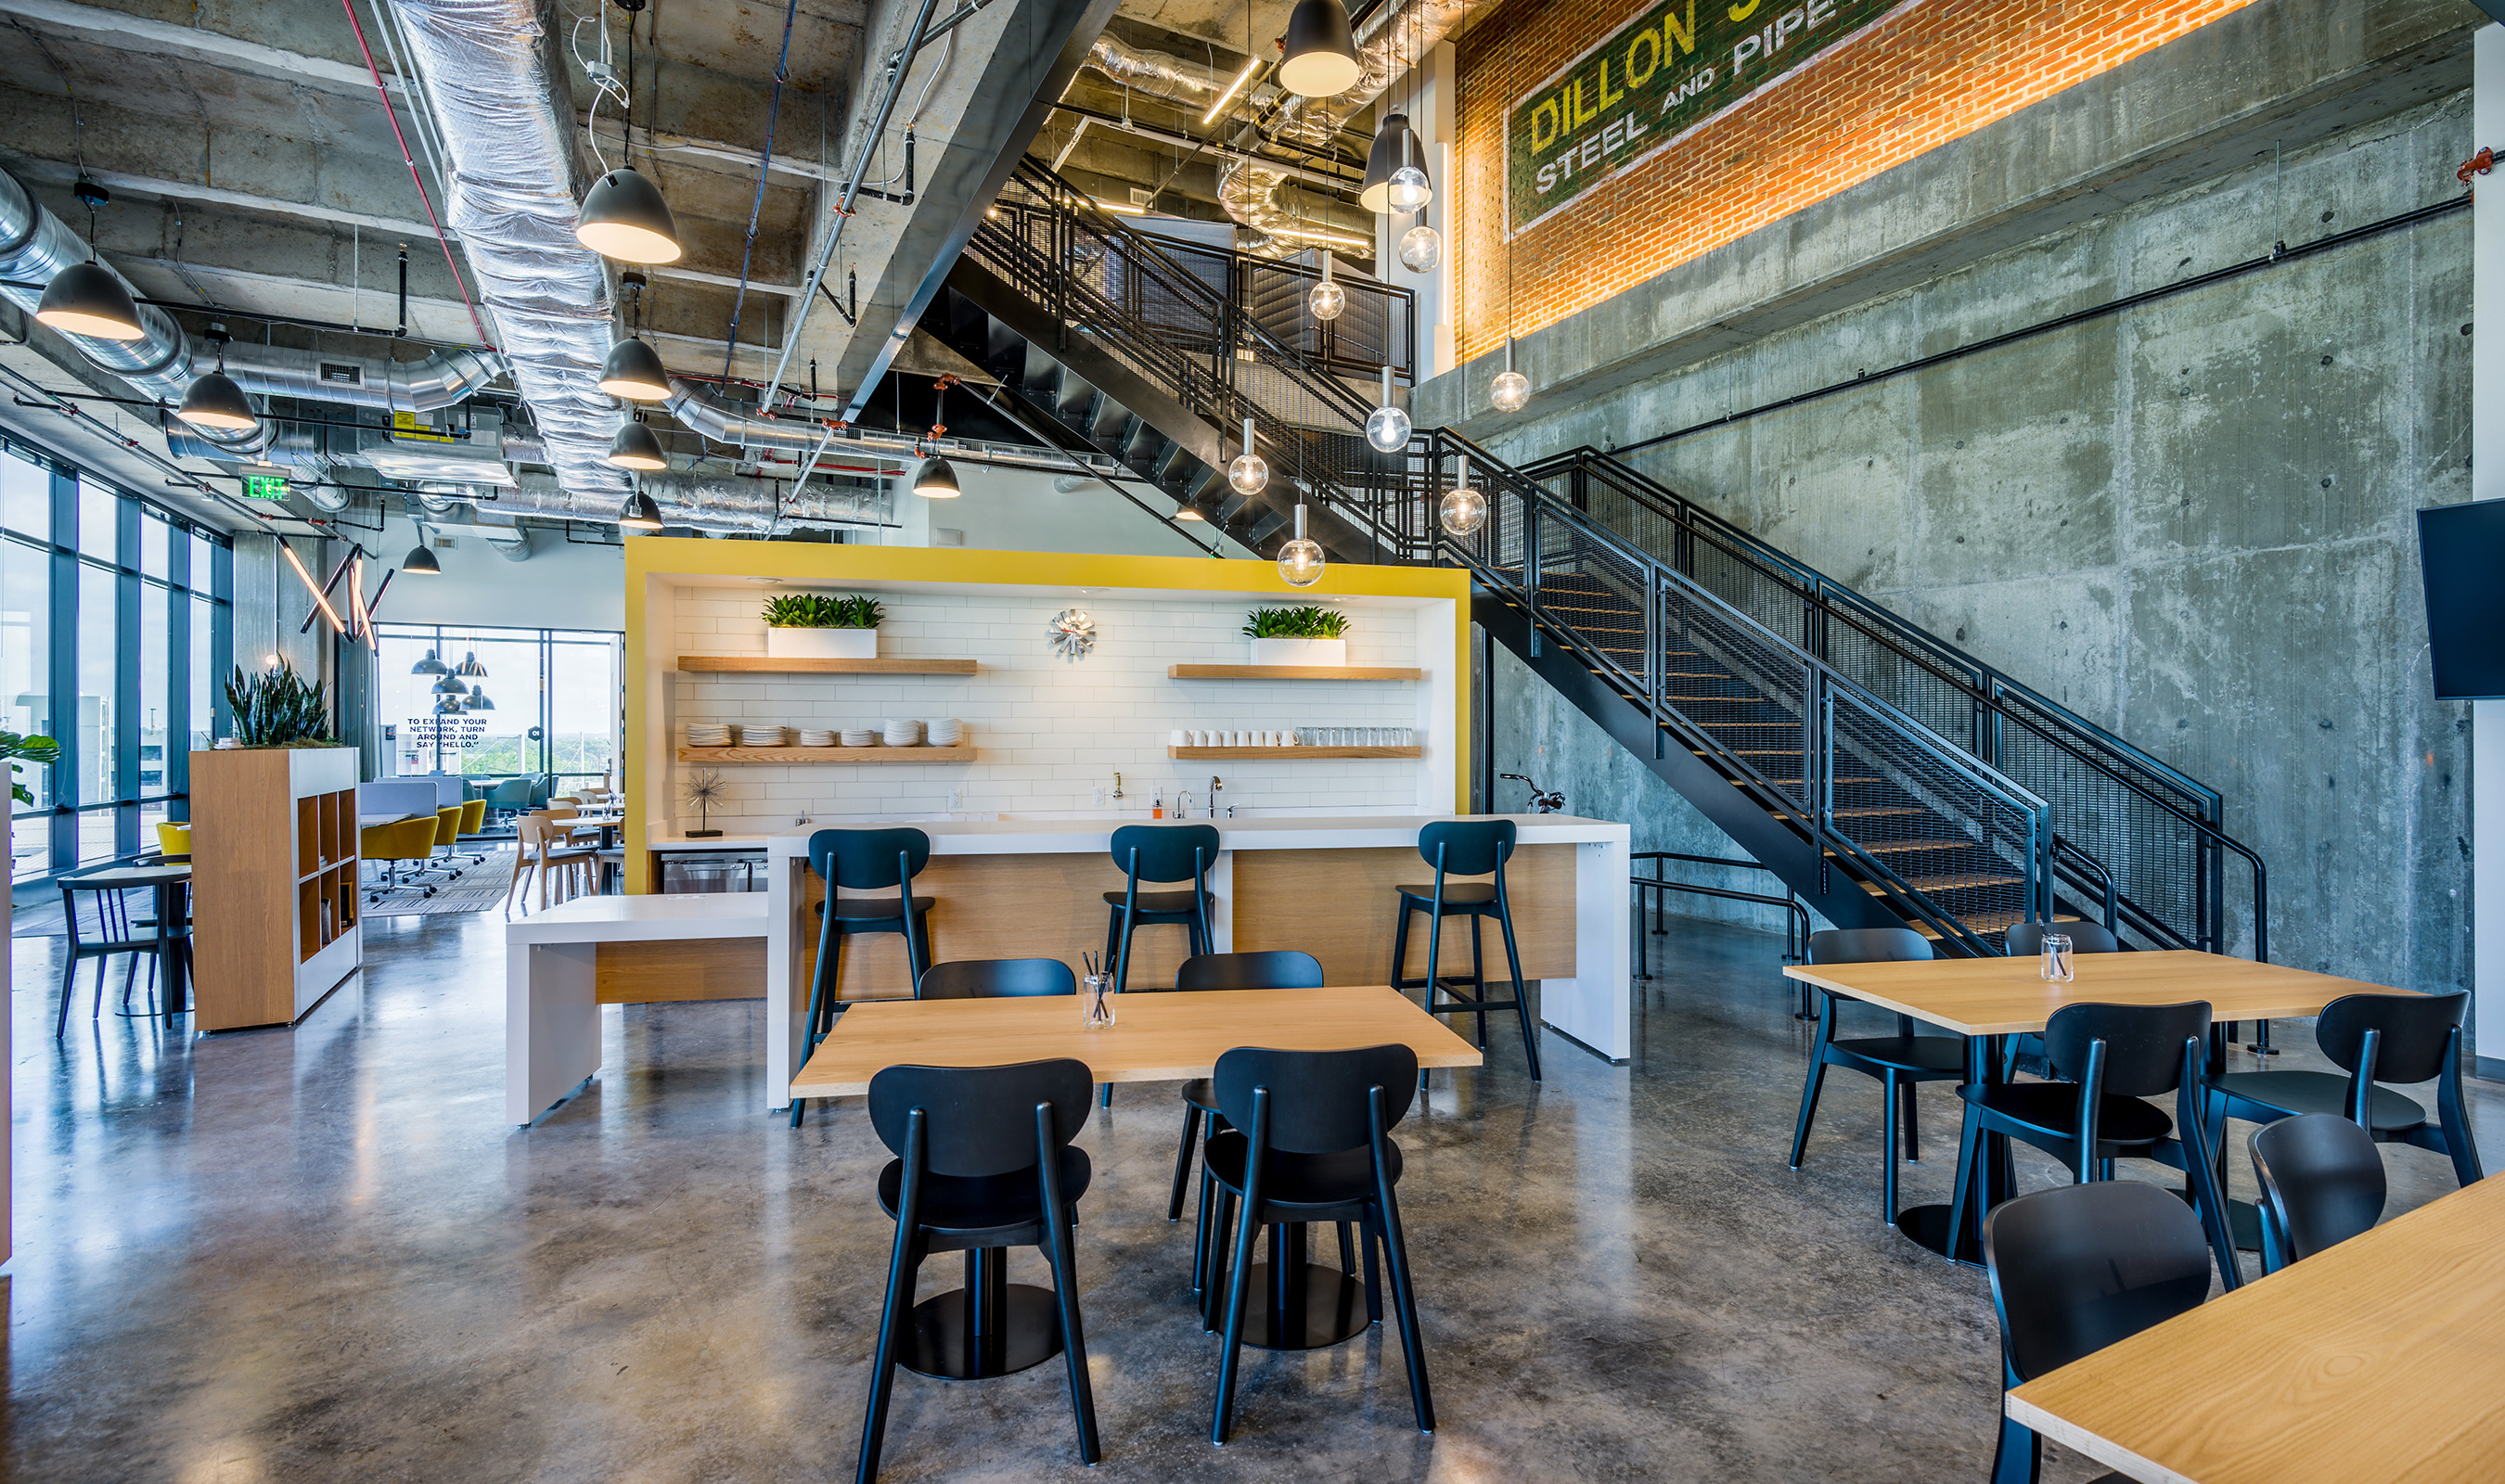 The black painted wire mesh panels compliment the industrial aesthetic of the Spaces at the Dillon.